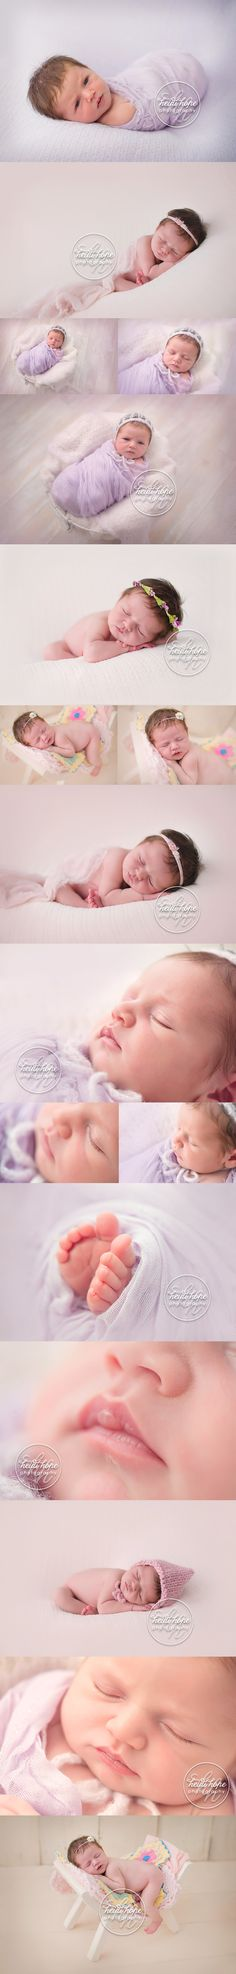 Baby D's classic newborn girl session in soft pink and lavender by Boston Newborn Photographer Heidi Hope.